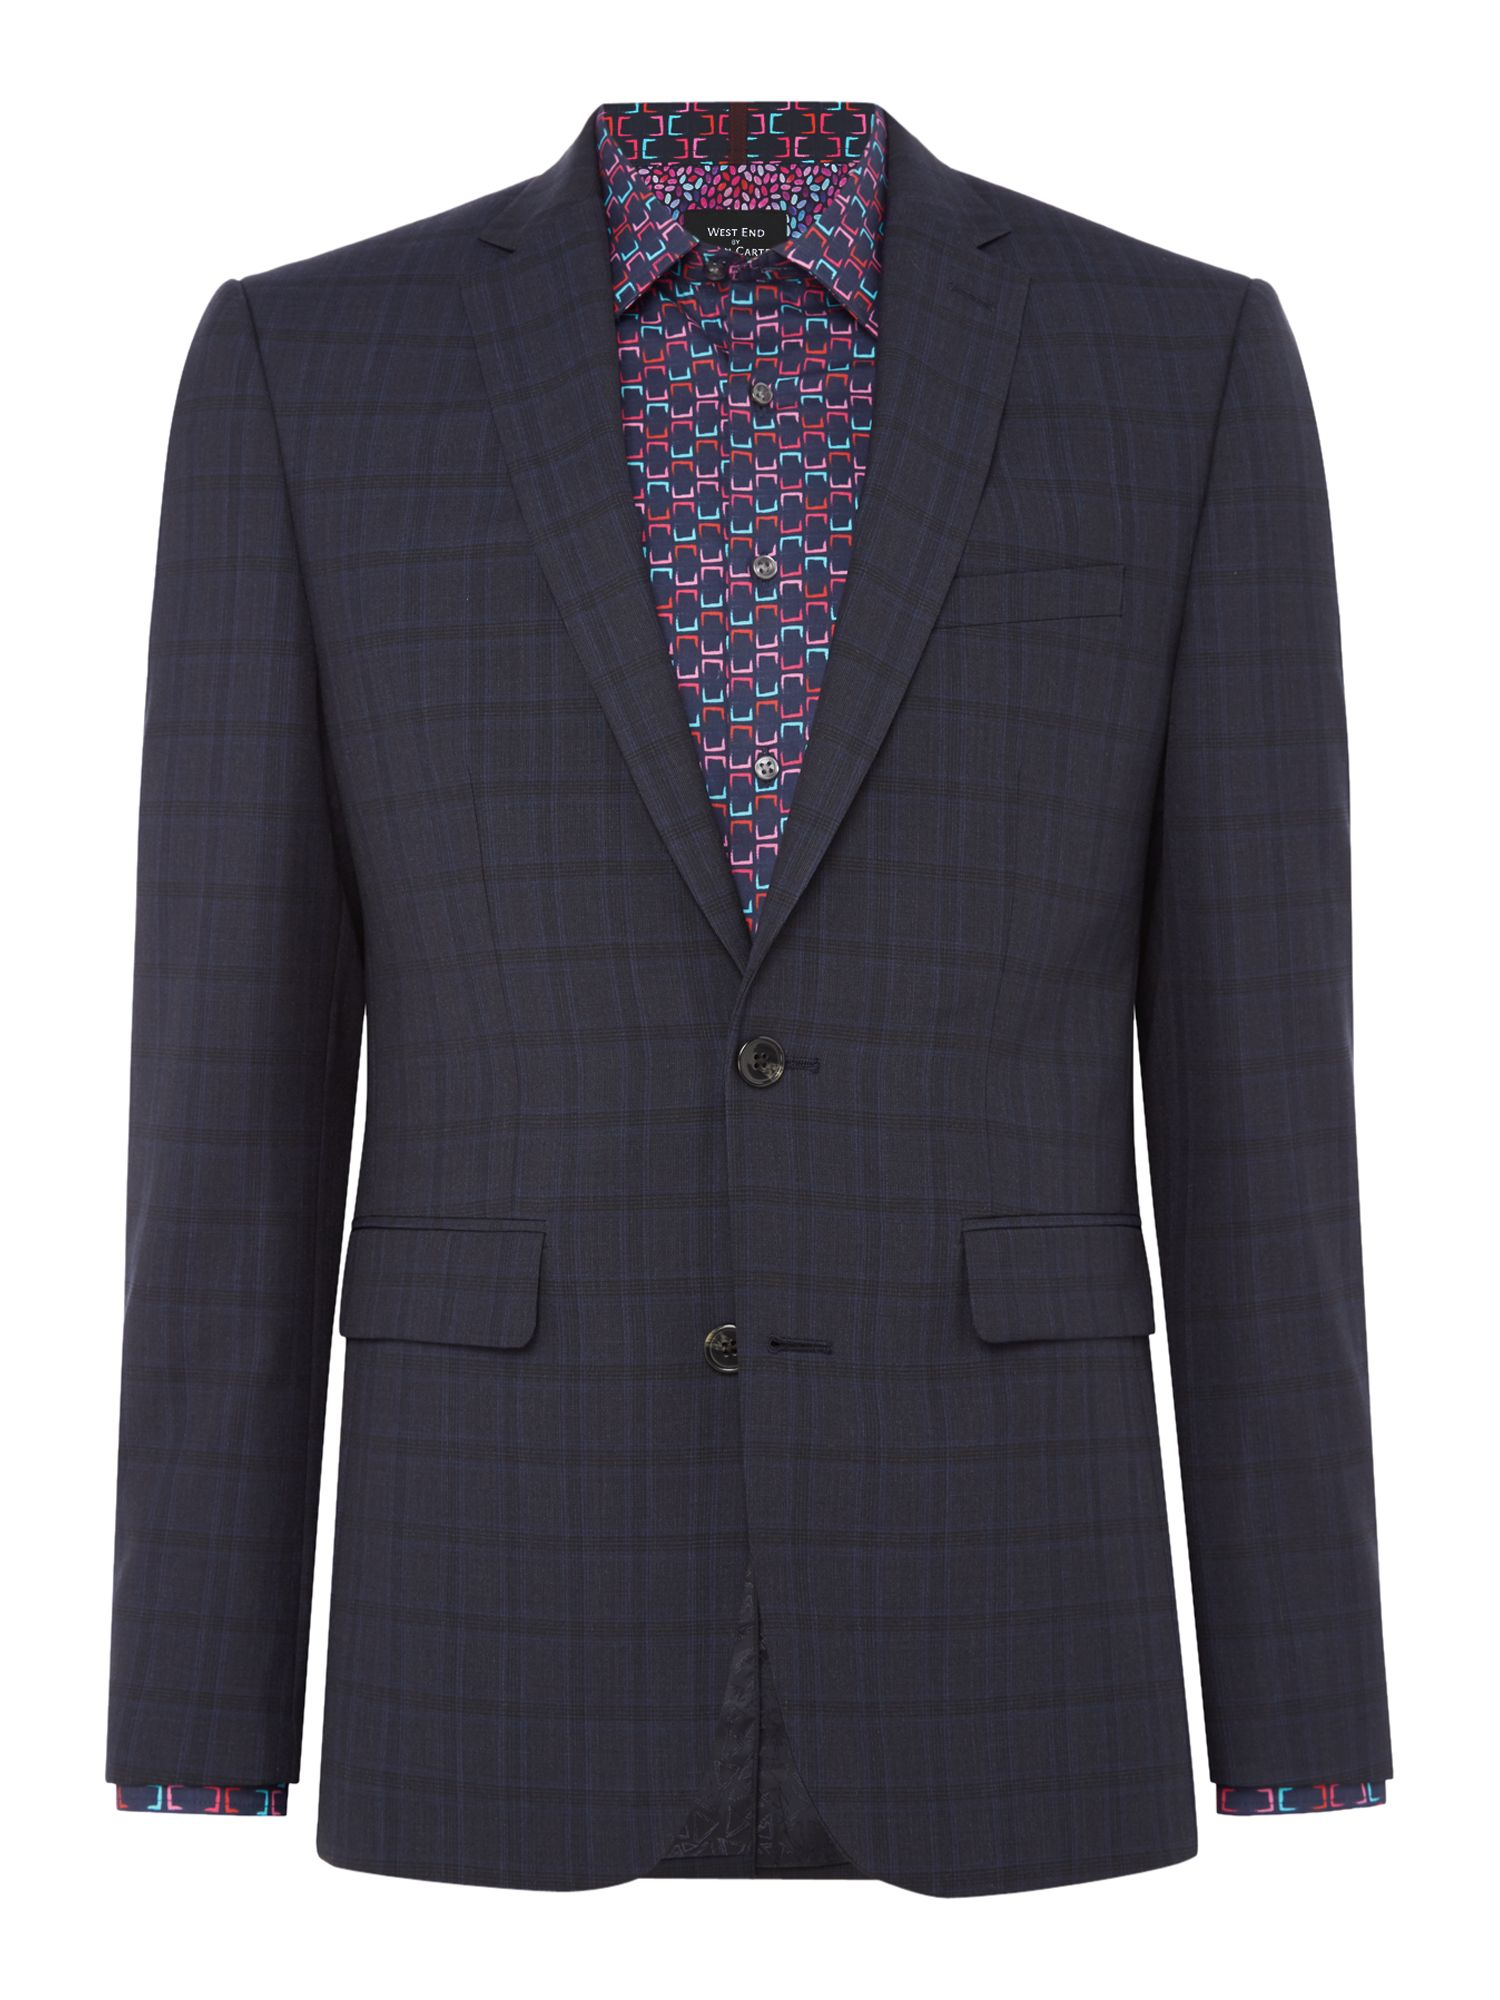 Men's Simon Carter Highlight Check Suit, Charcoal